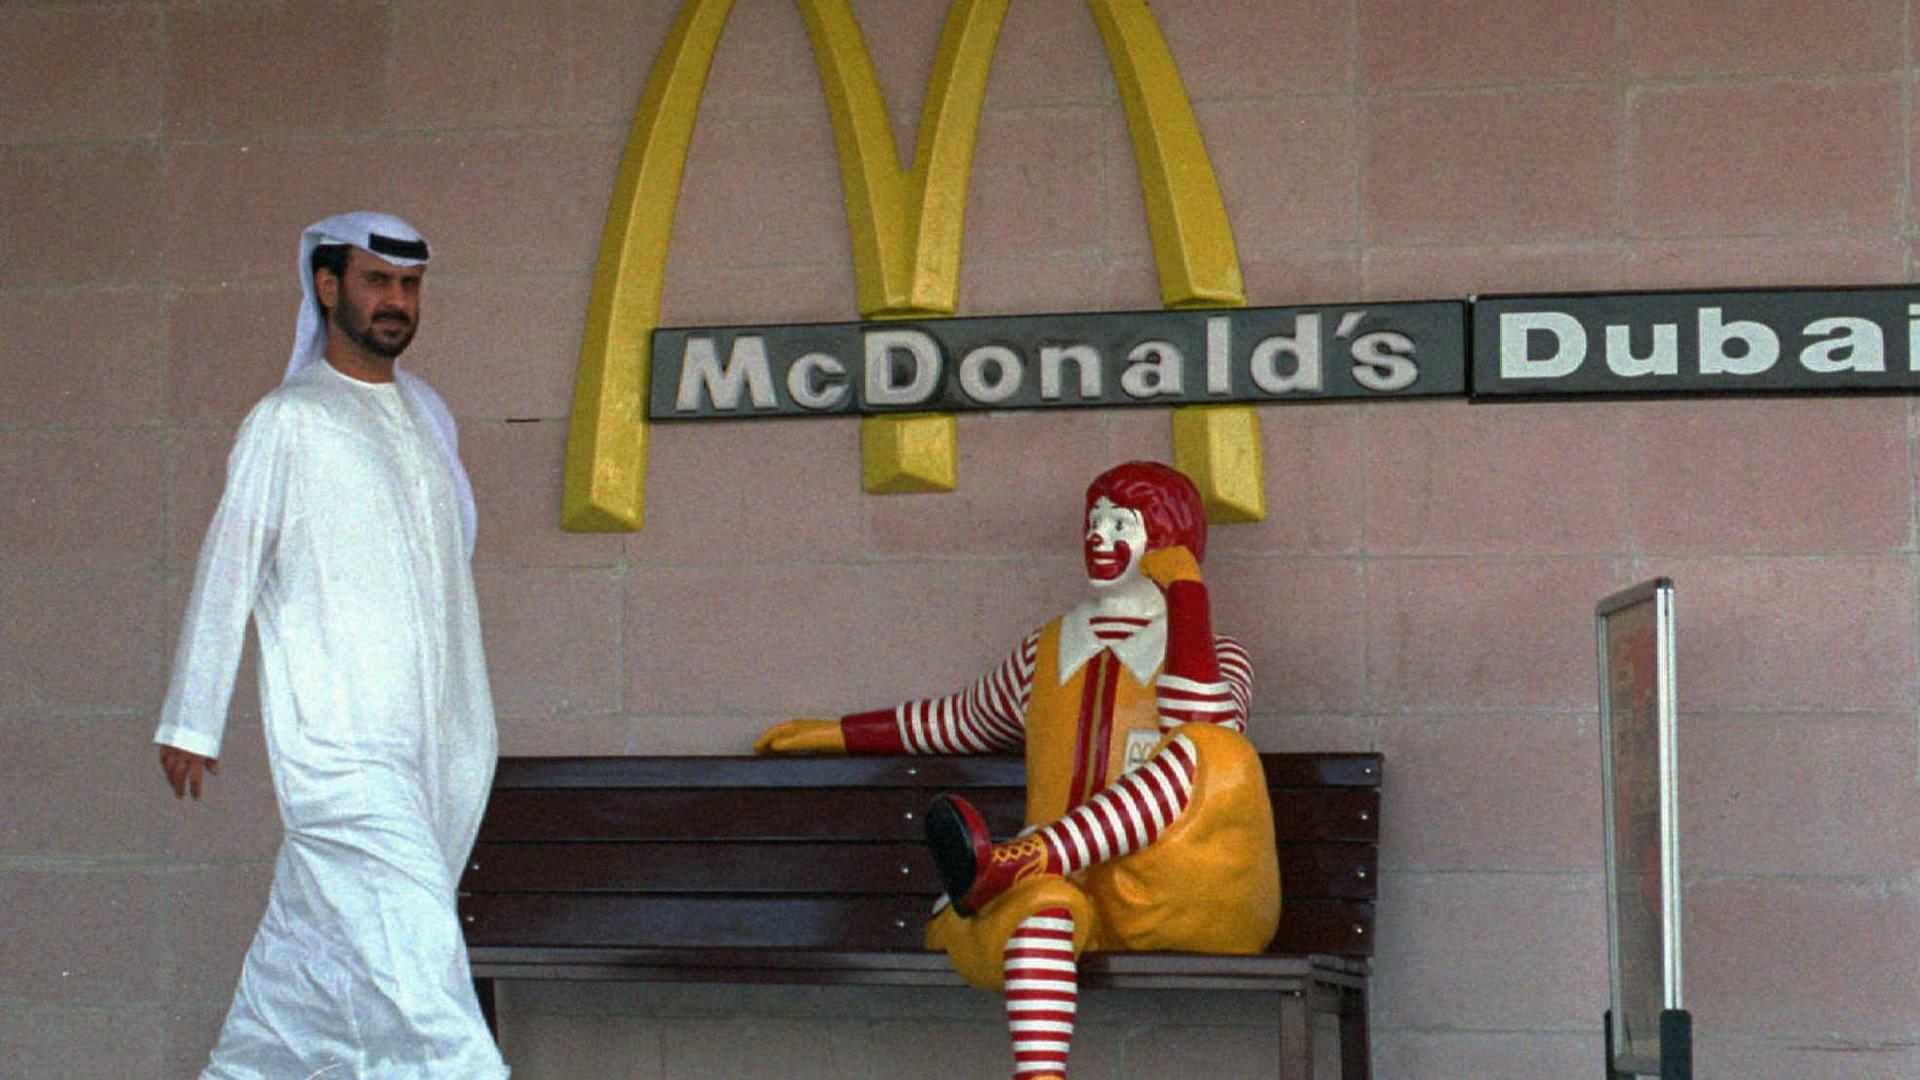 Der McDonalds-Clown Quelle: AP